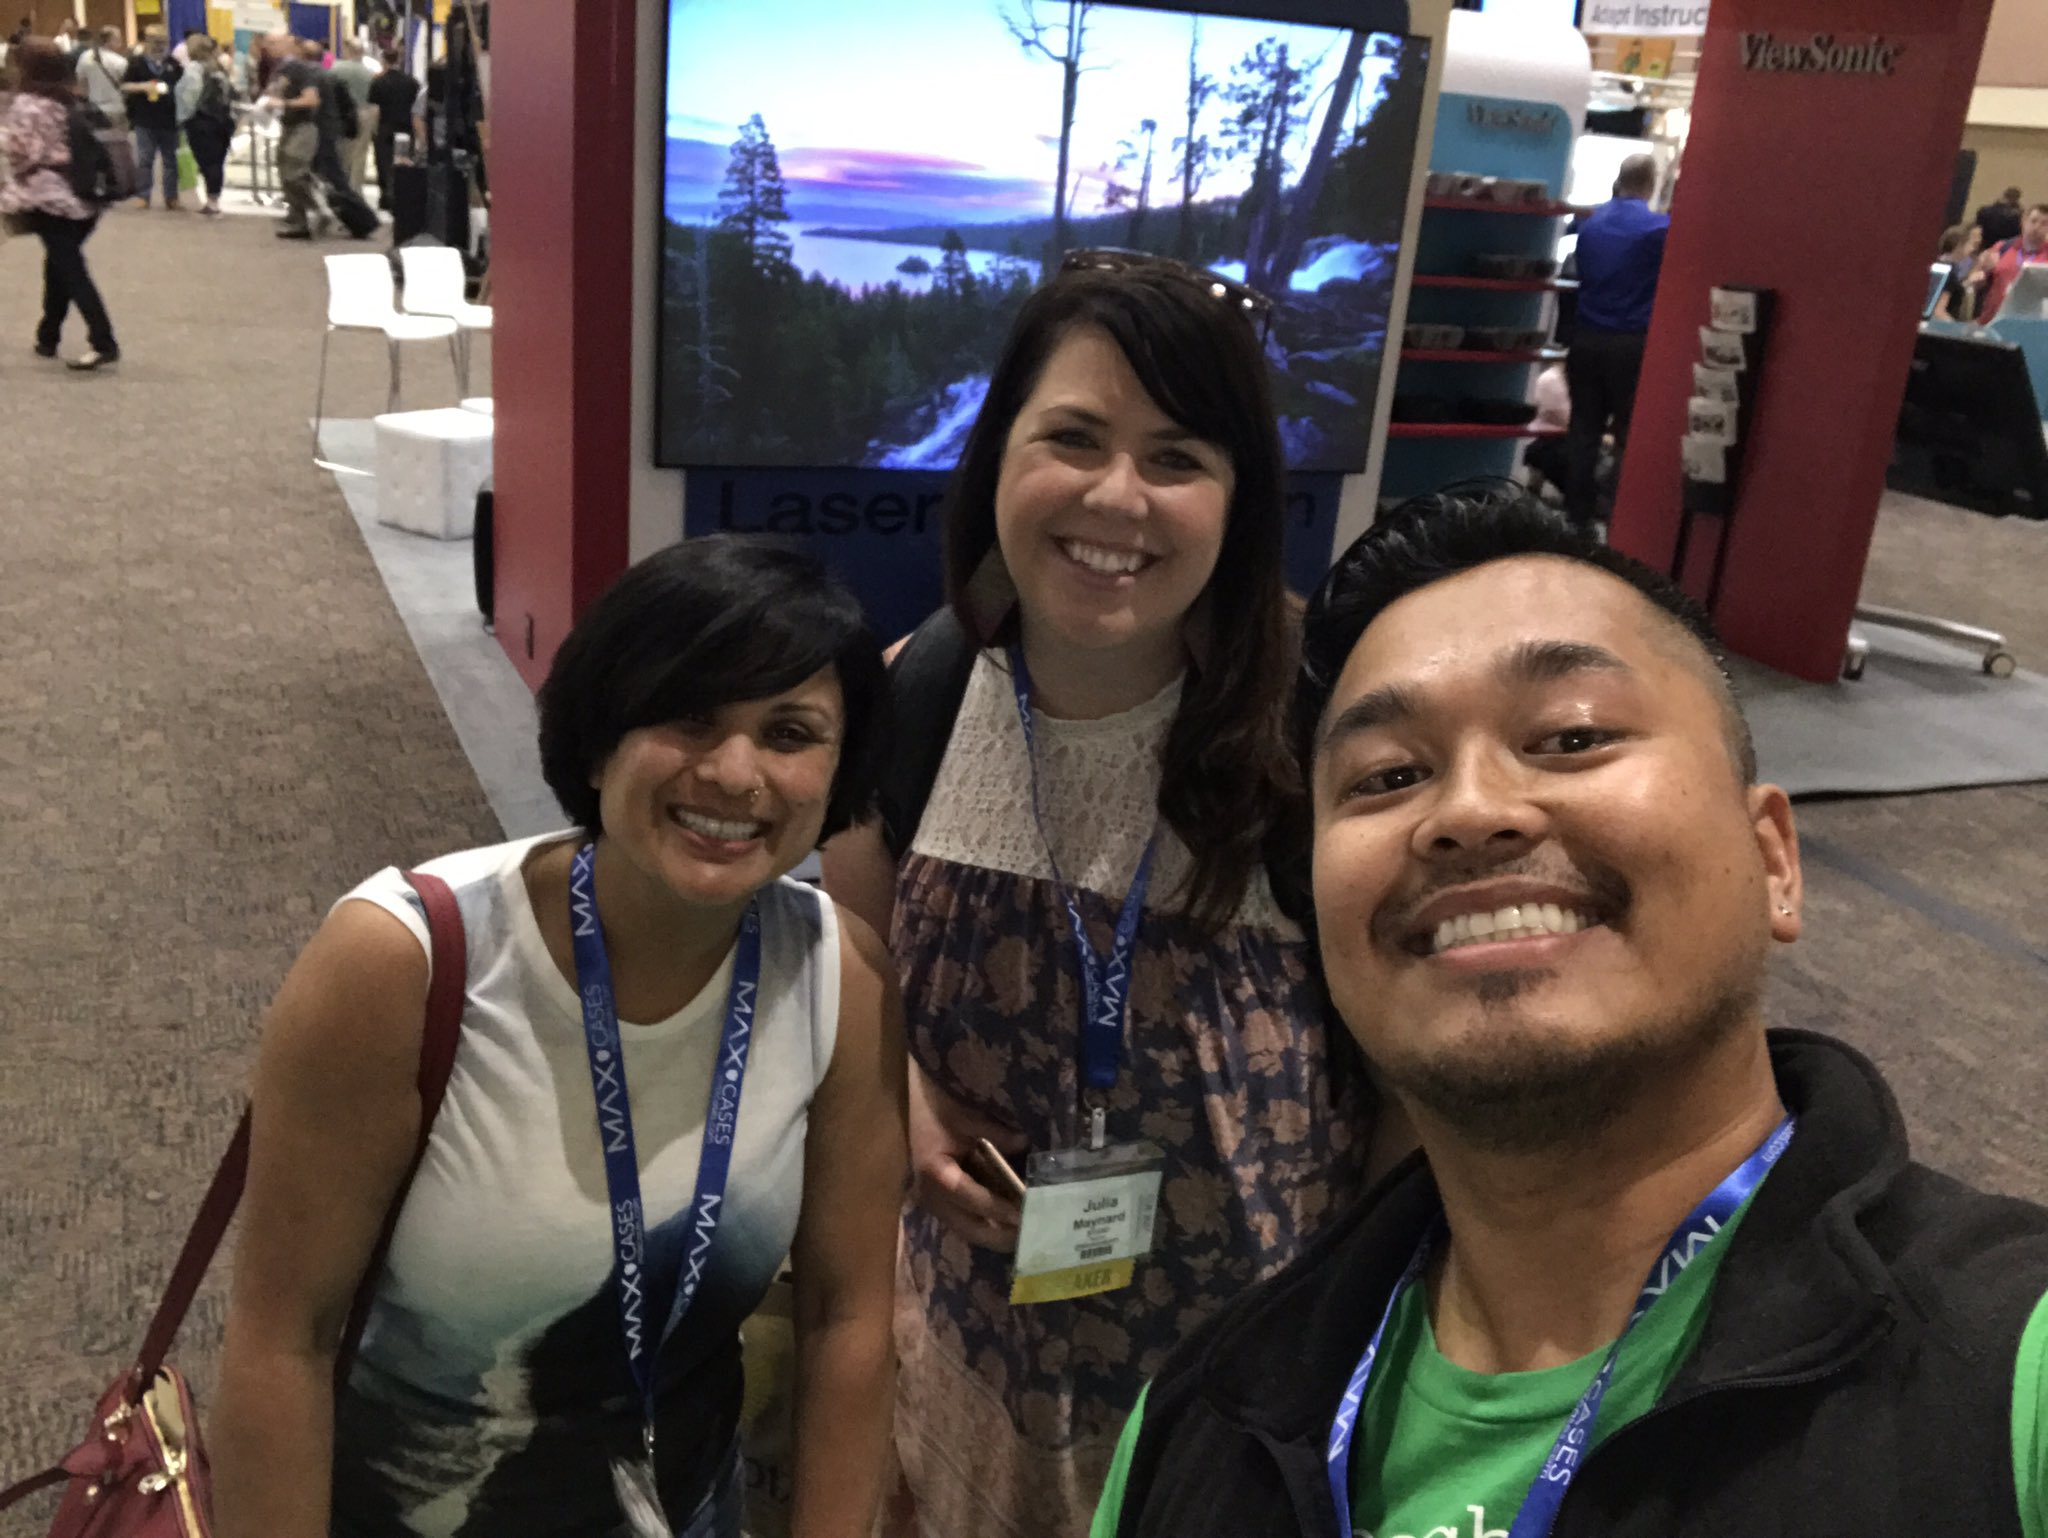 So many smart leaders here at #cue17 @ThiaraBaje @Maynardsixth representing @sfusd & great #collaborators with @CommonSenseEd https://t.co/Gr1RJ3zRgv